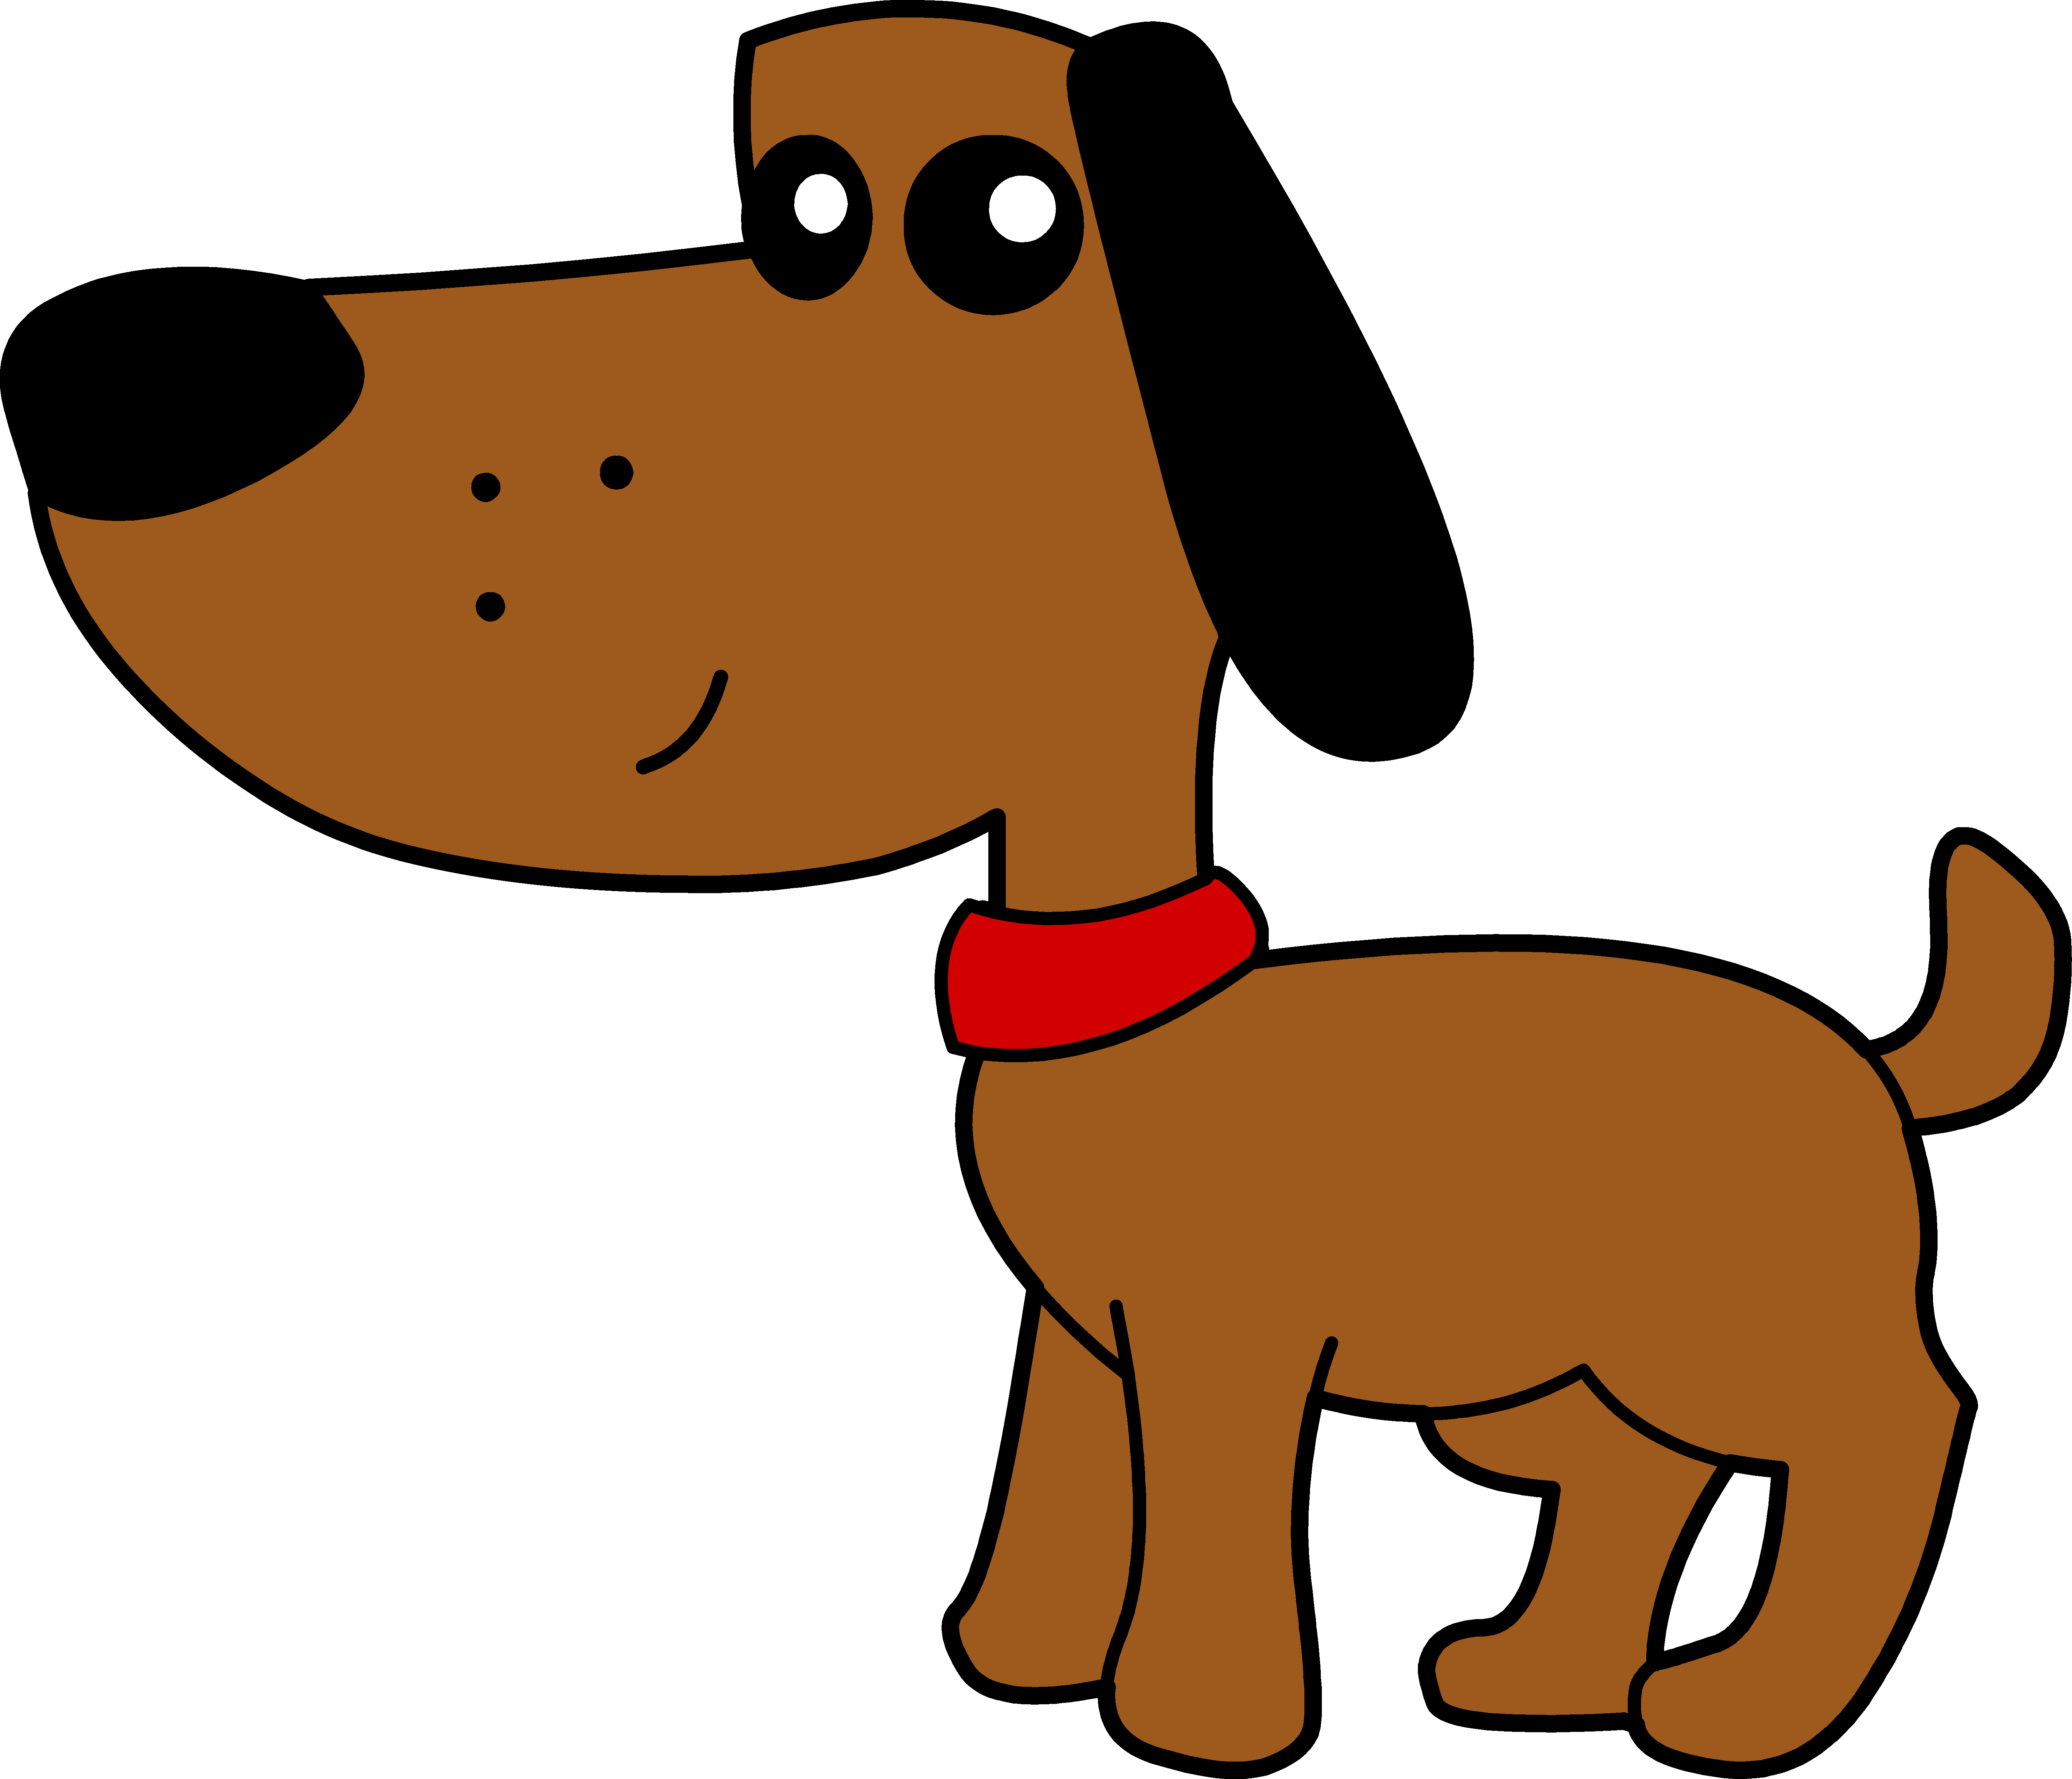 royalty free stock Dogs clipart. Free images of download.